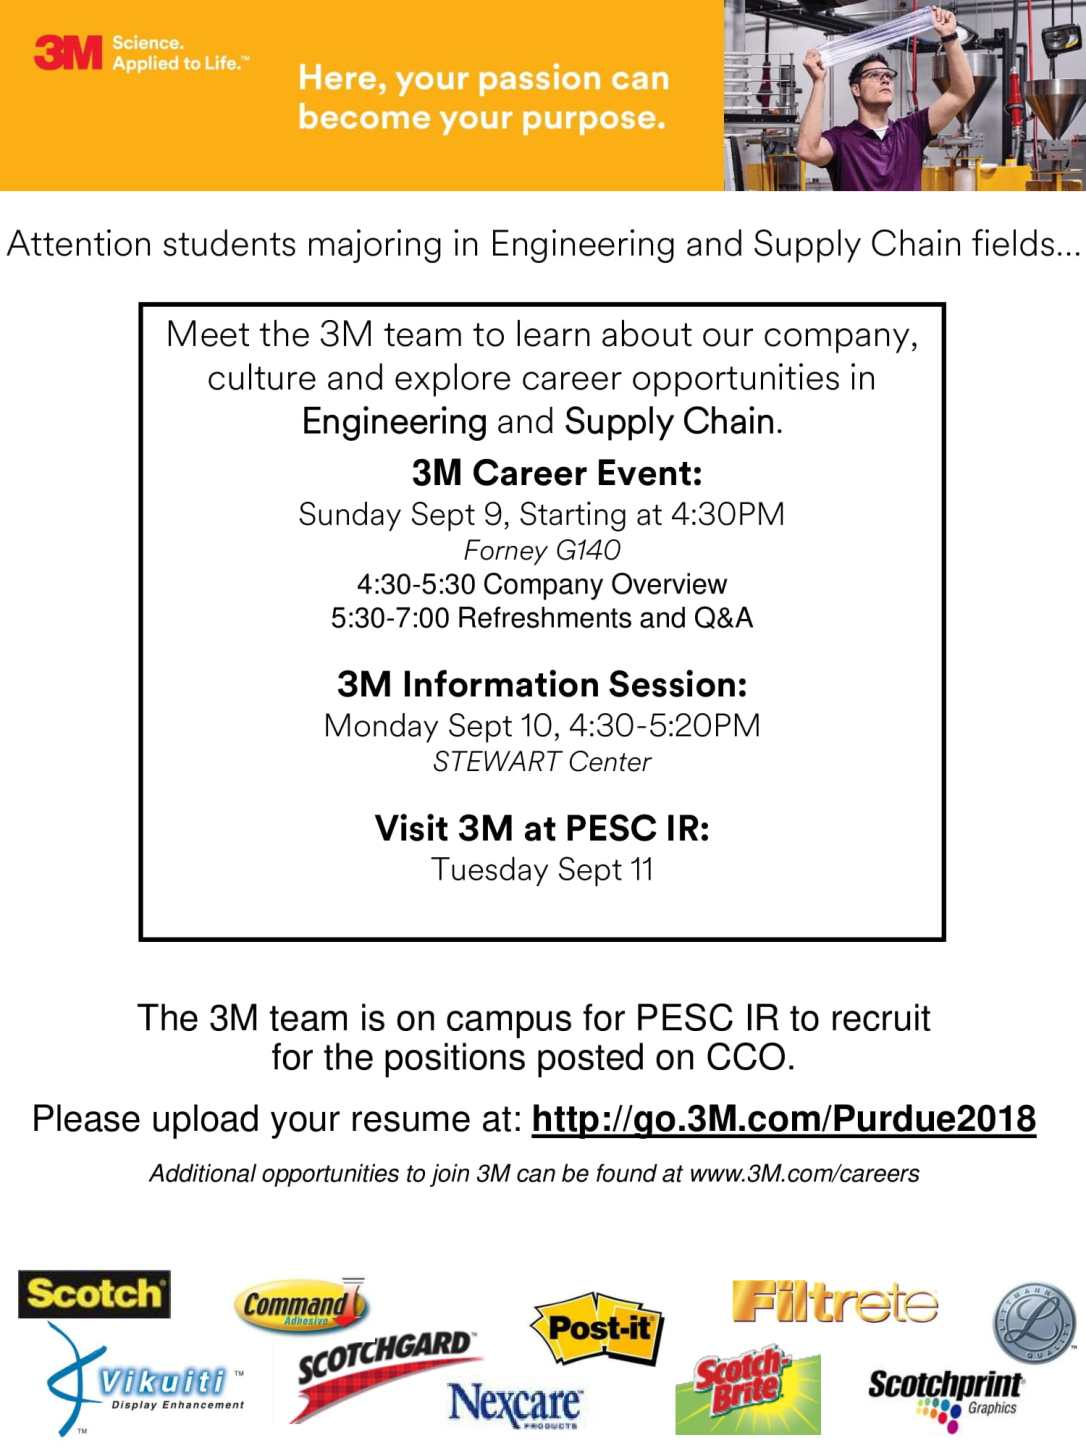 3M-PESC IR Events Sept 2018-1